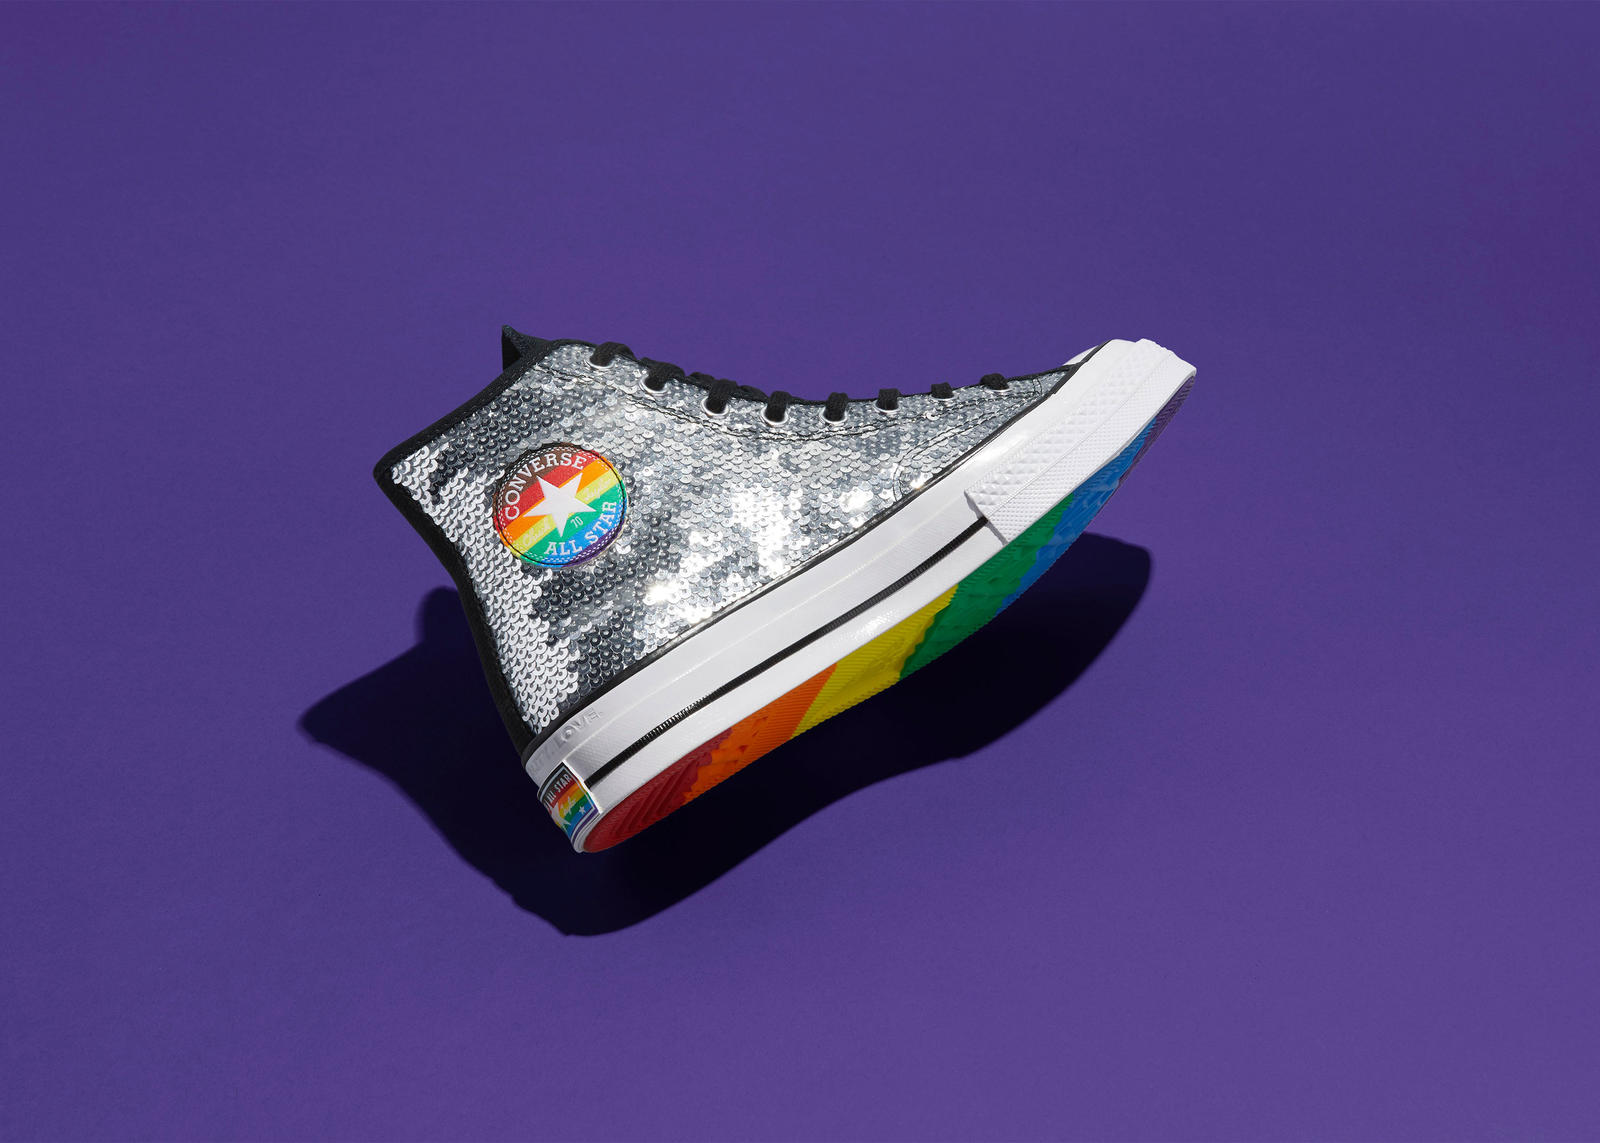 Nike BETRUE and Converse Pride 2020 Footwear Official Images and Release Dates 9